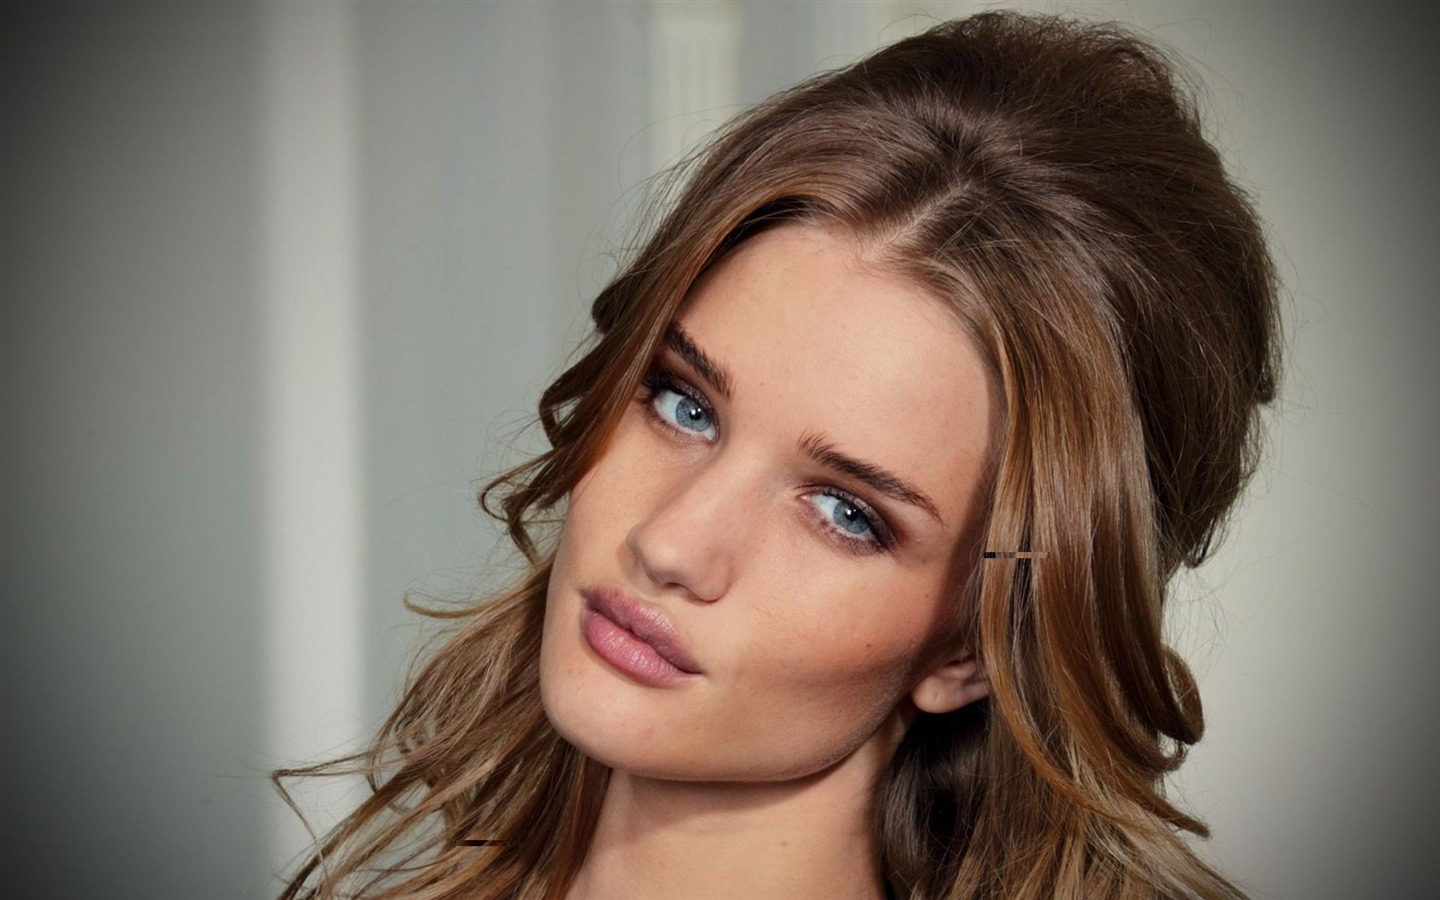 Rosie Huntington Whiteley #005 - 1440x900 Wallpapers Pictures Photos Images